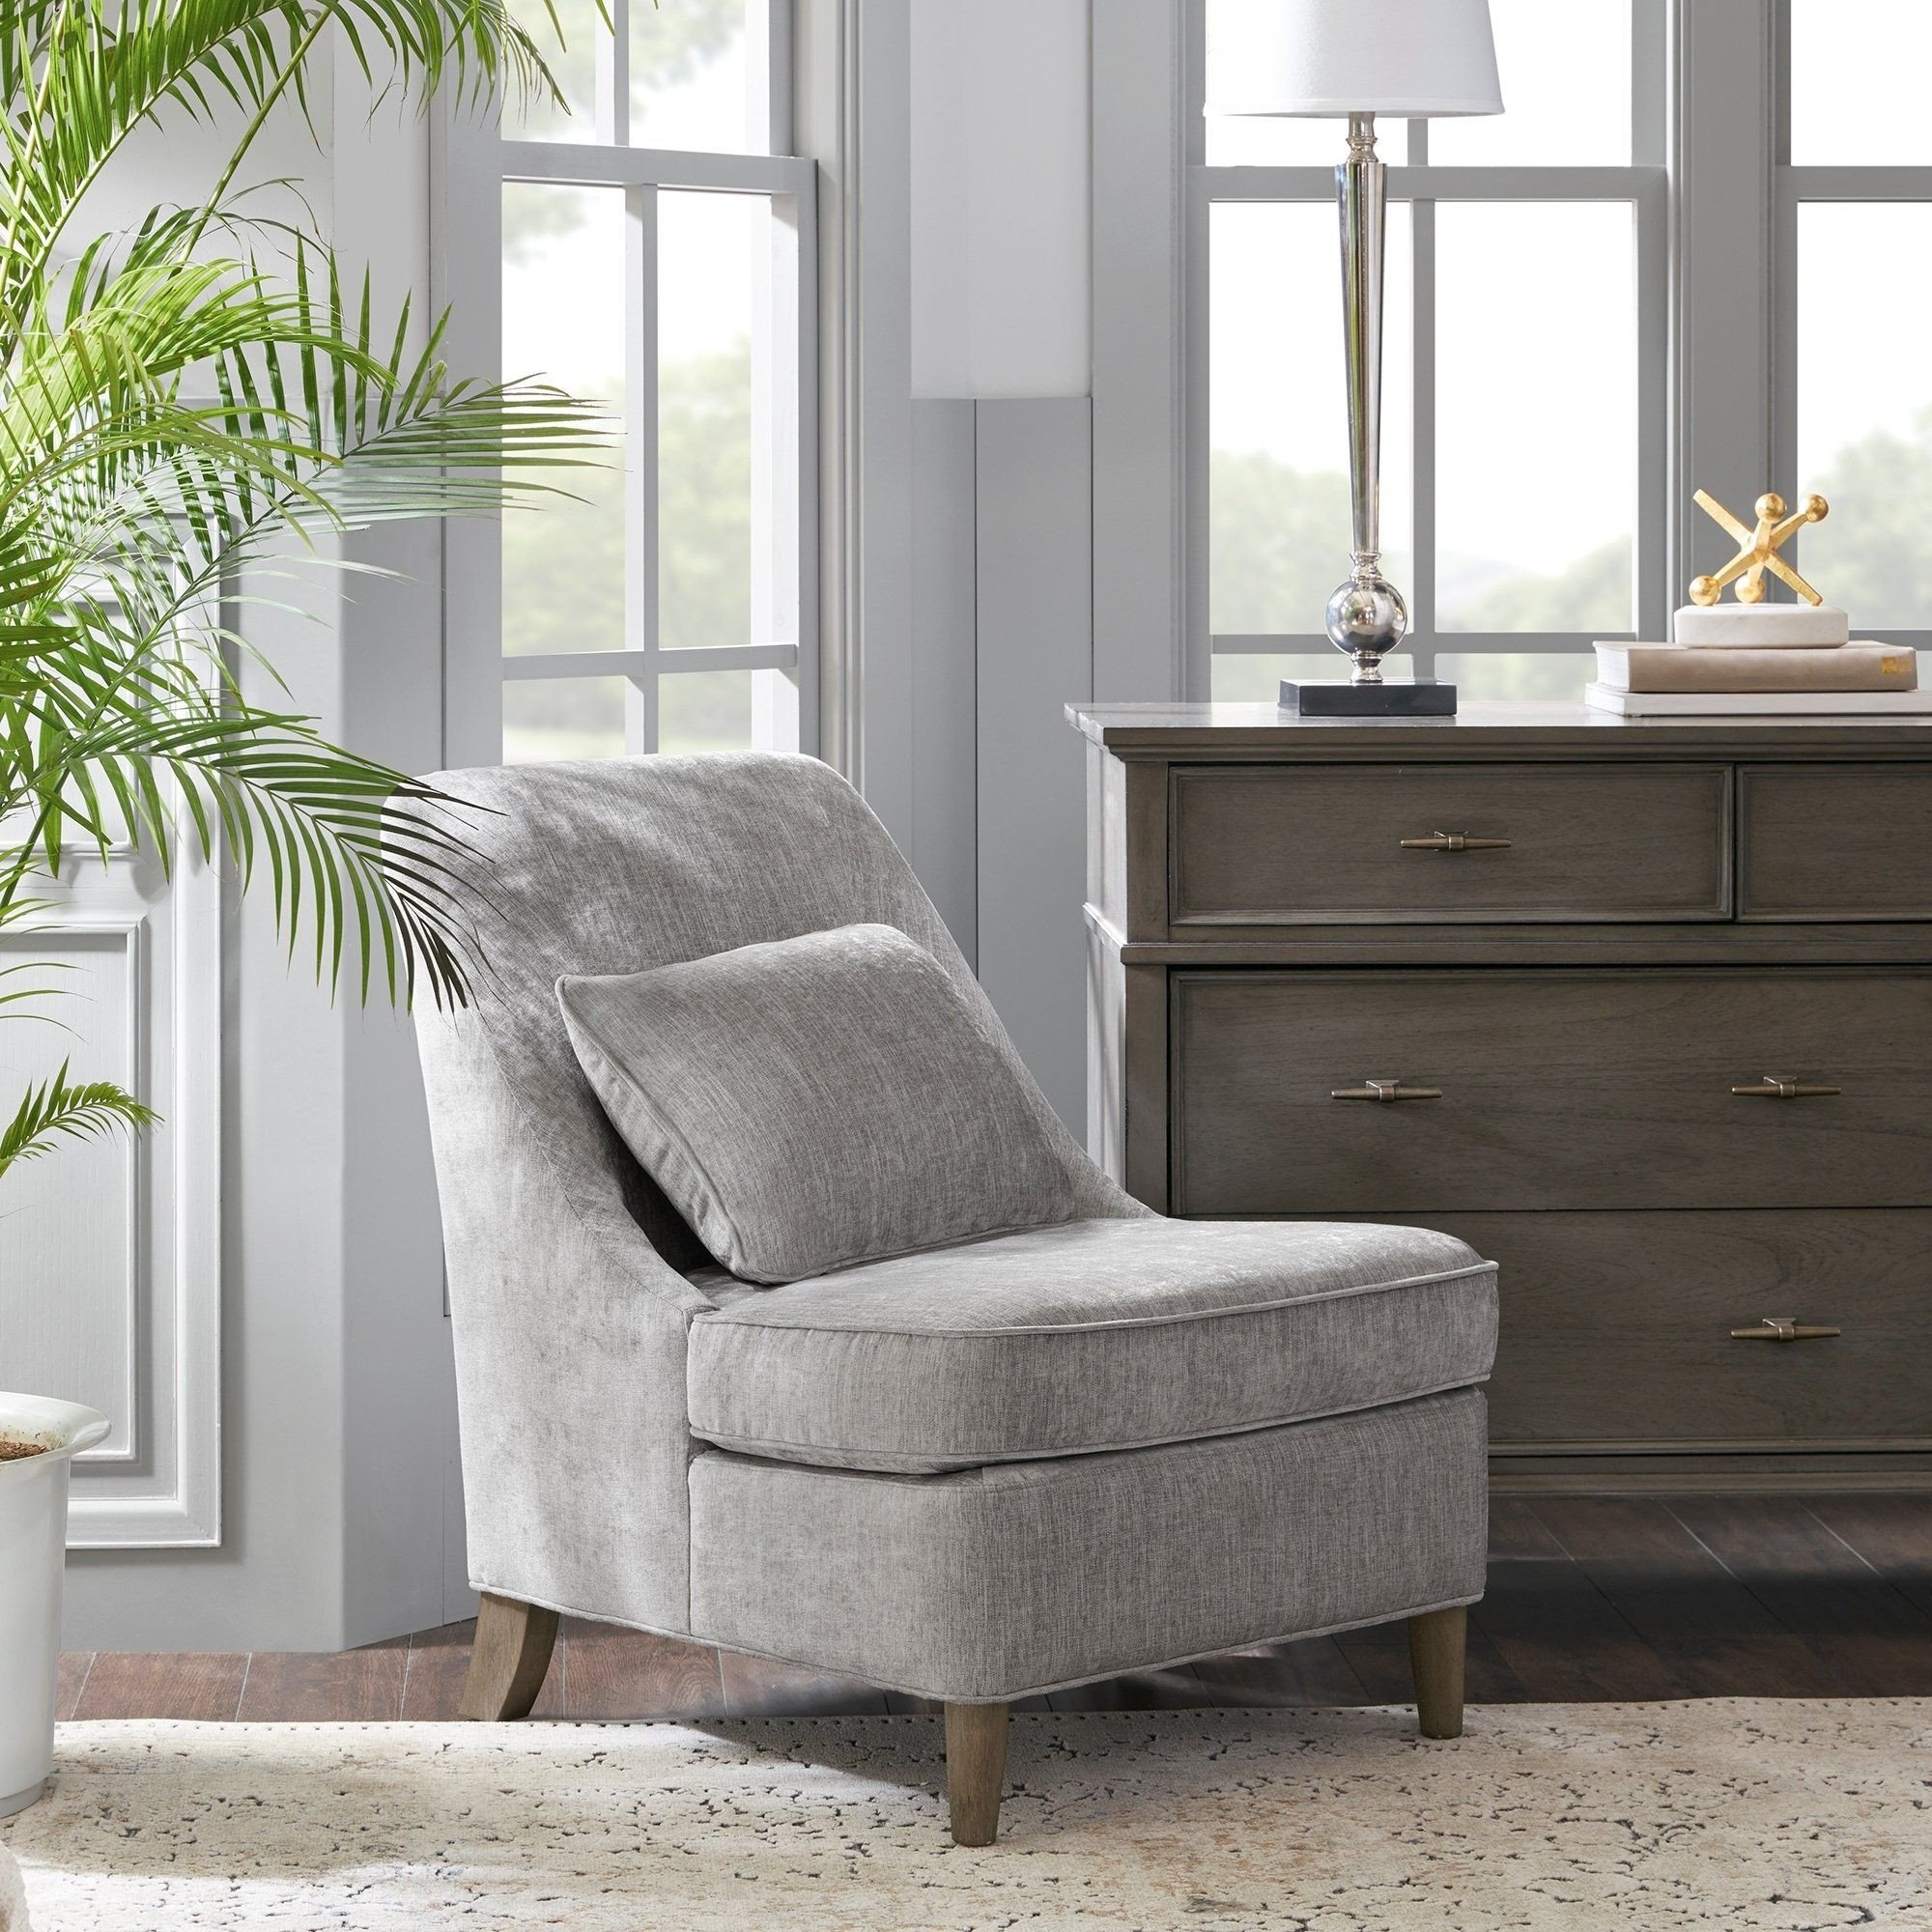 Small Bedroom Chairs for Adults New Madison Park Signature Tilly Light Grey Accent Chair Gray